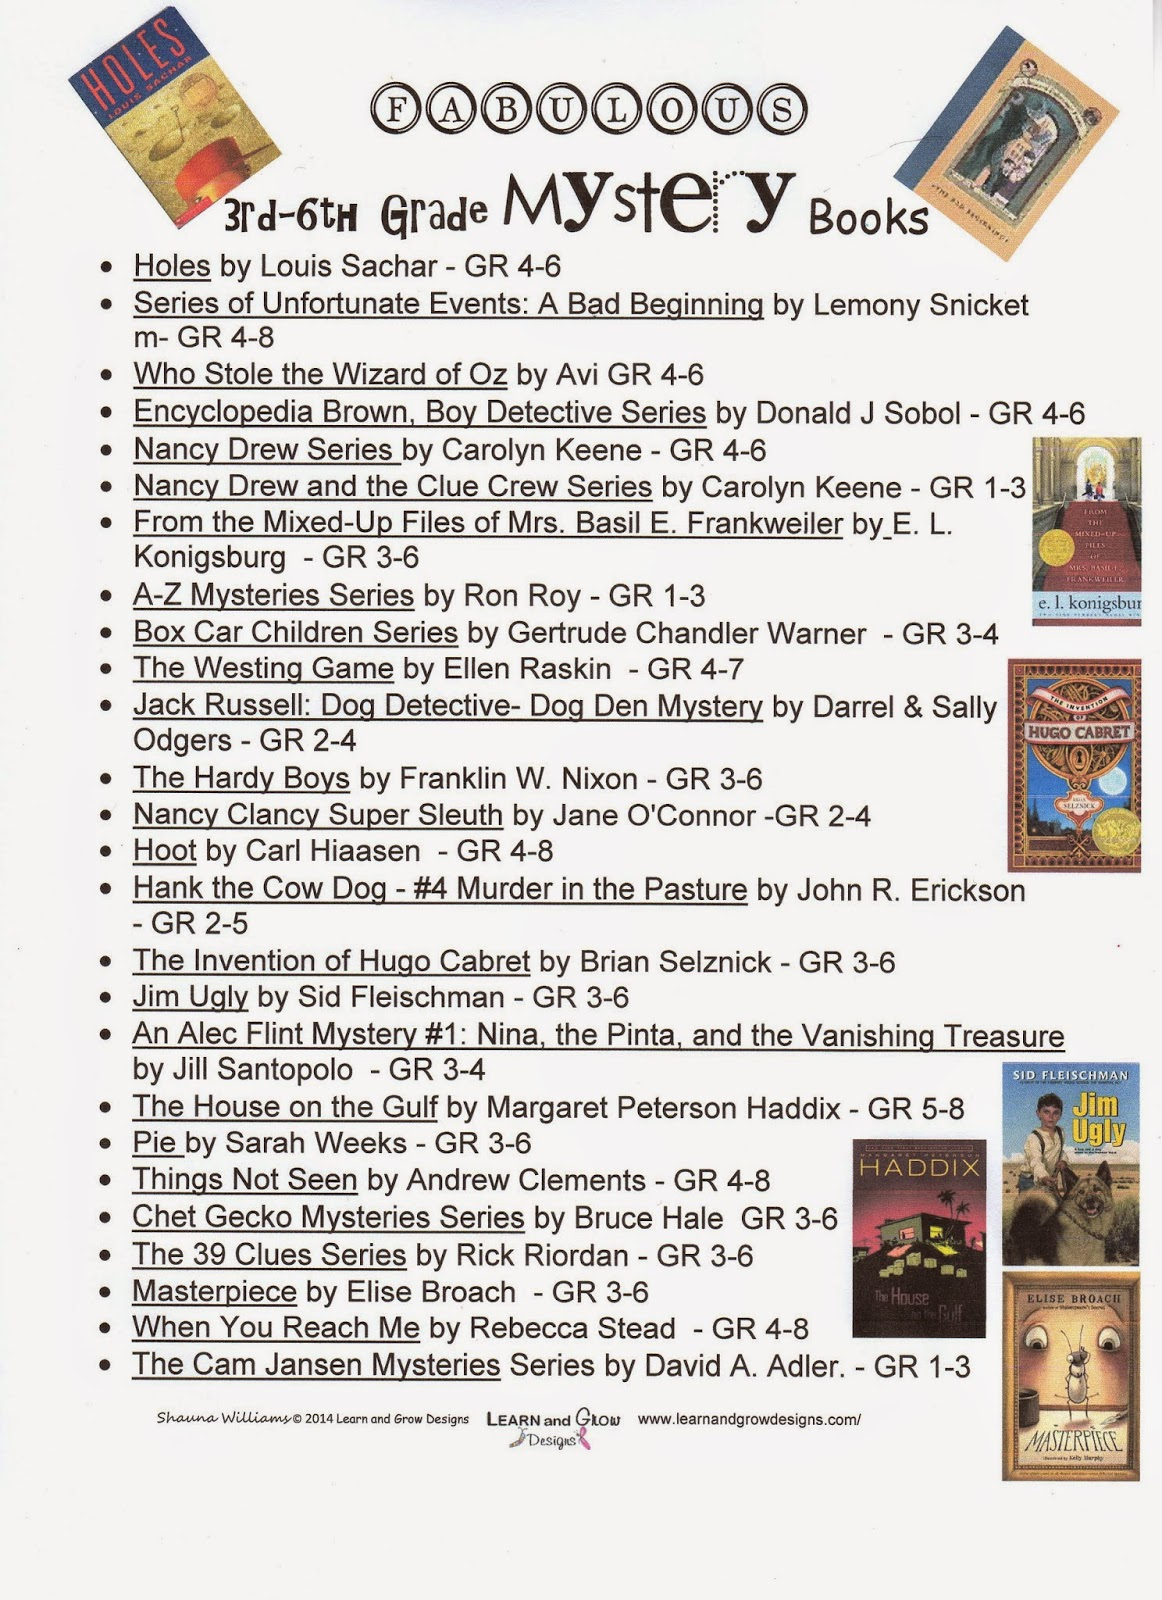 Worksheets Grade 4 Reading Selection learn and grow designs website 3rd 6th grade mystery book reading suggestions